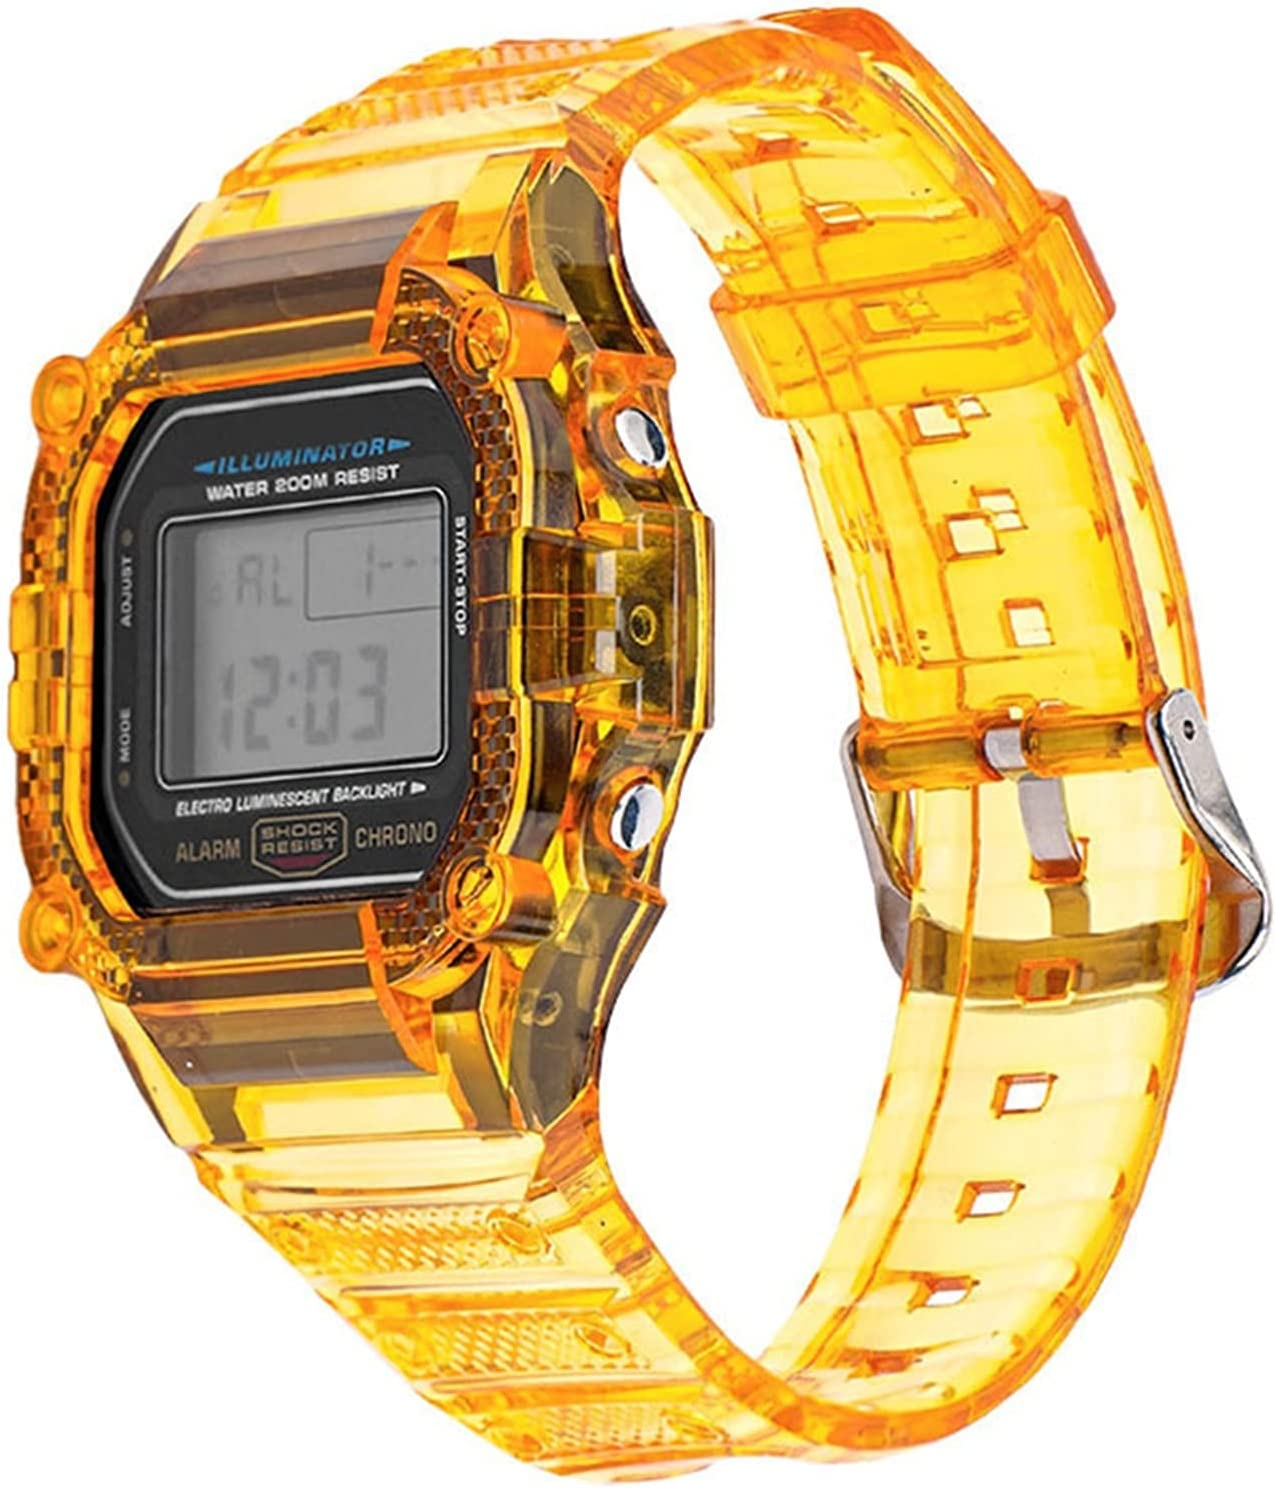 HGGFA Direct sale of manufacturer TPU Weekly update Resin Case Watch Strap G-Shock DW-5600 for Casio GW-M5